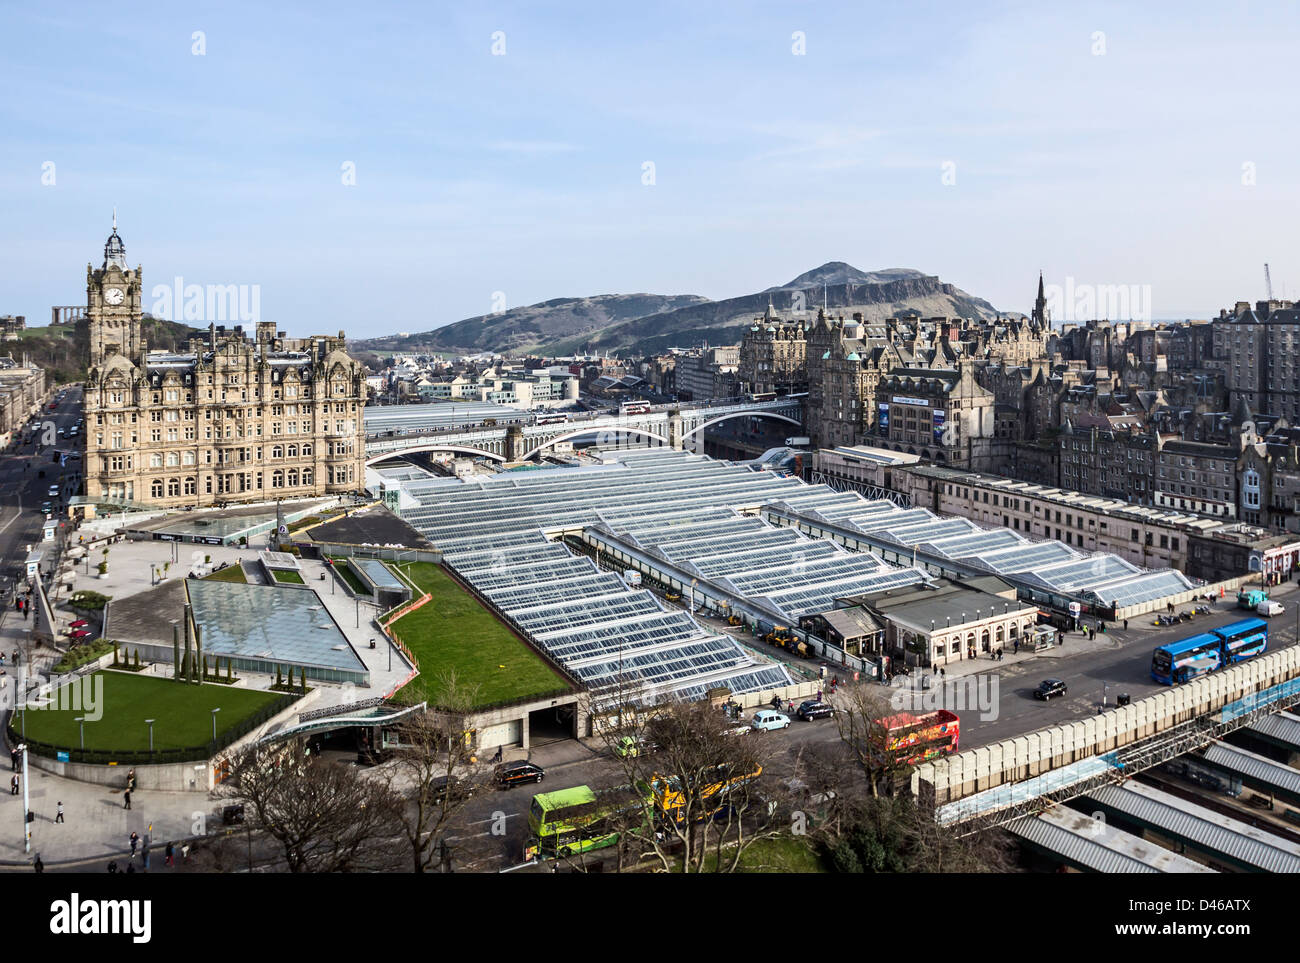 Edinburgh Waverley Railway Station new roof seen from the Sir Walter Scott Monument - Stock Image